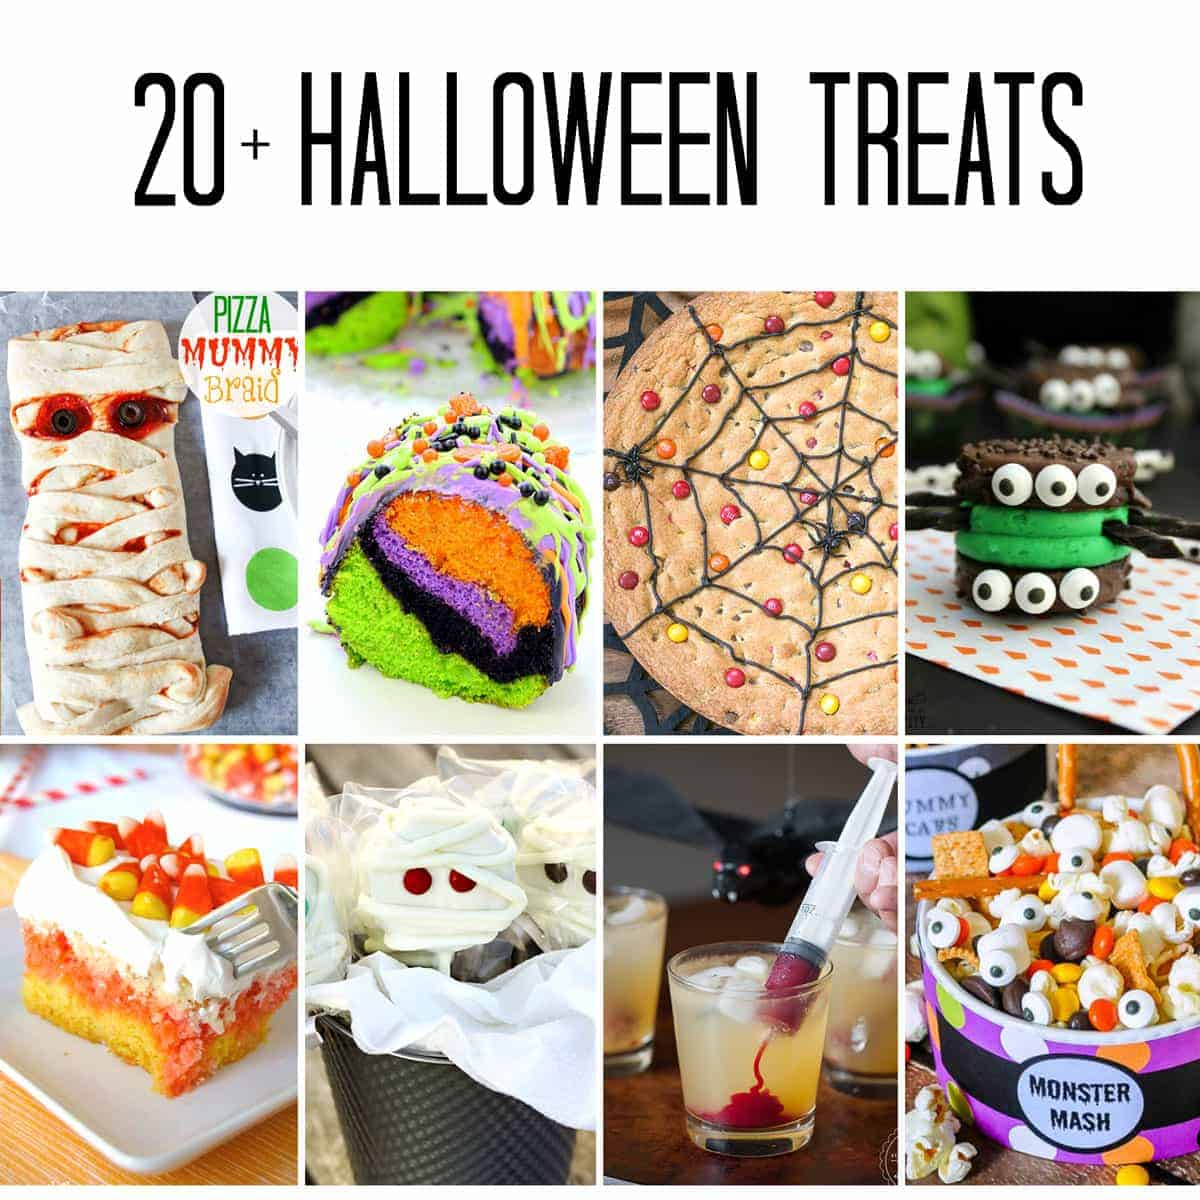 20+ halloween treats | self proclaimed foodie